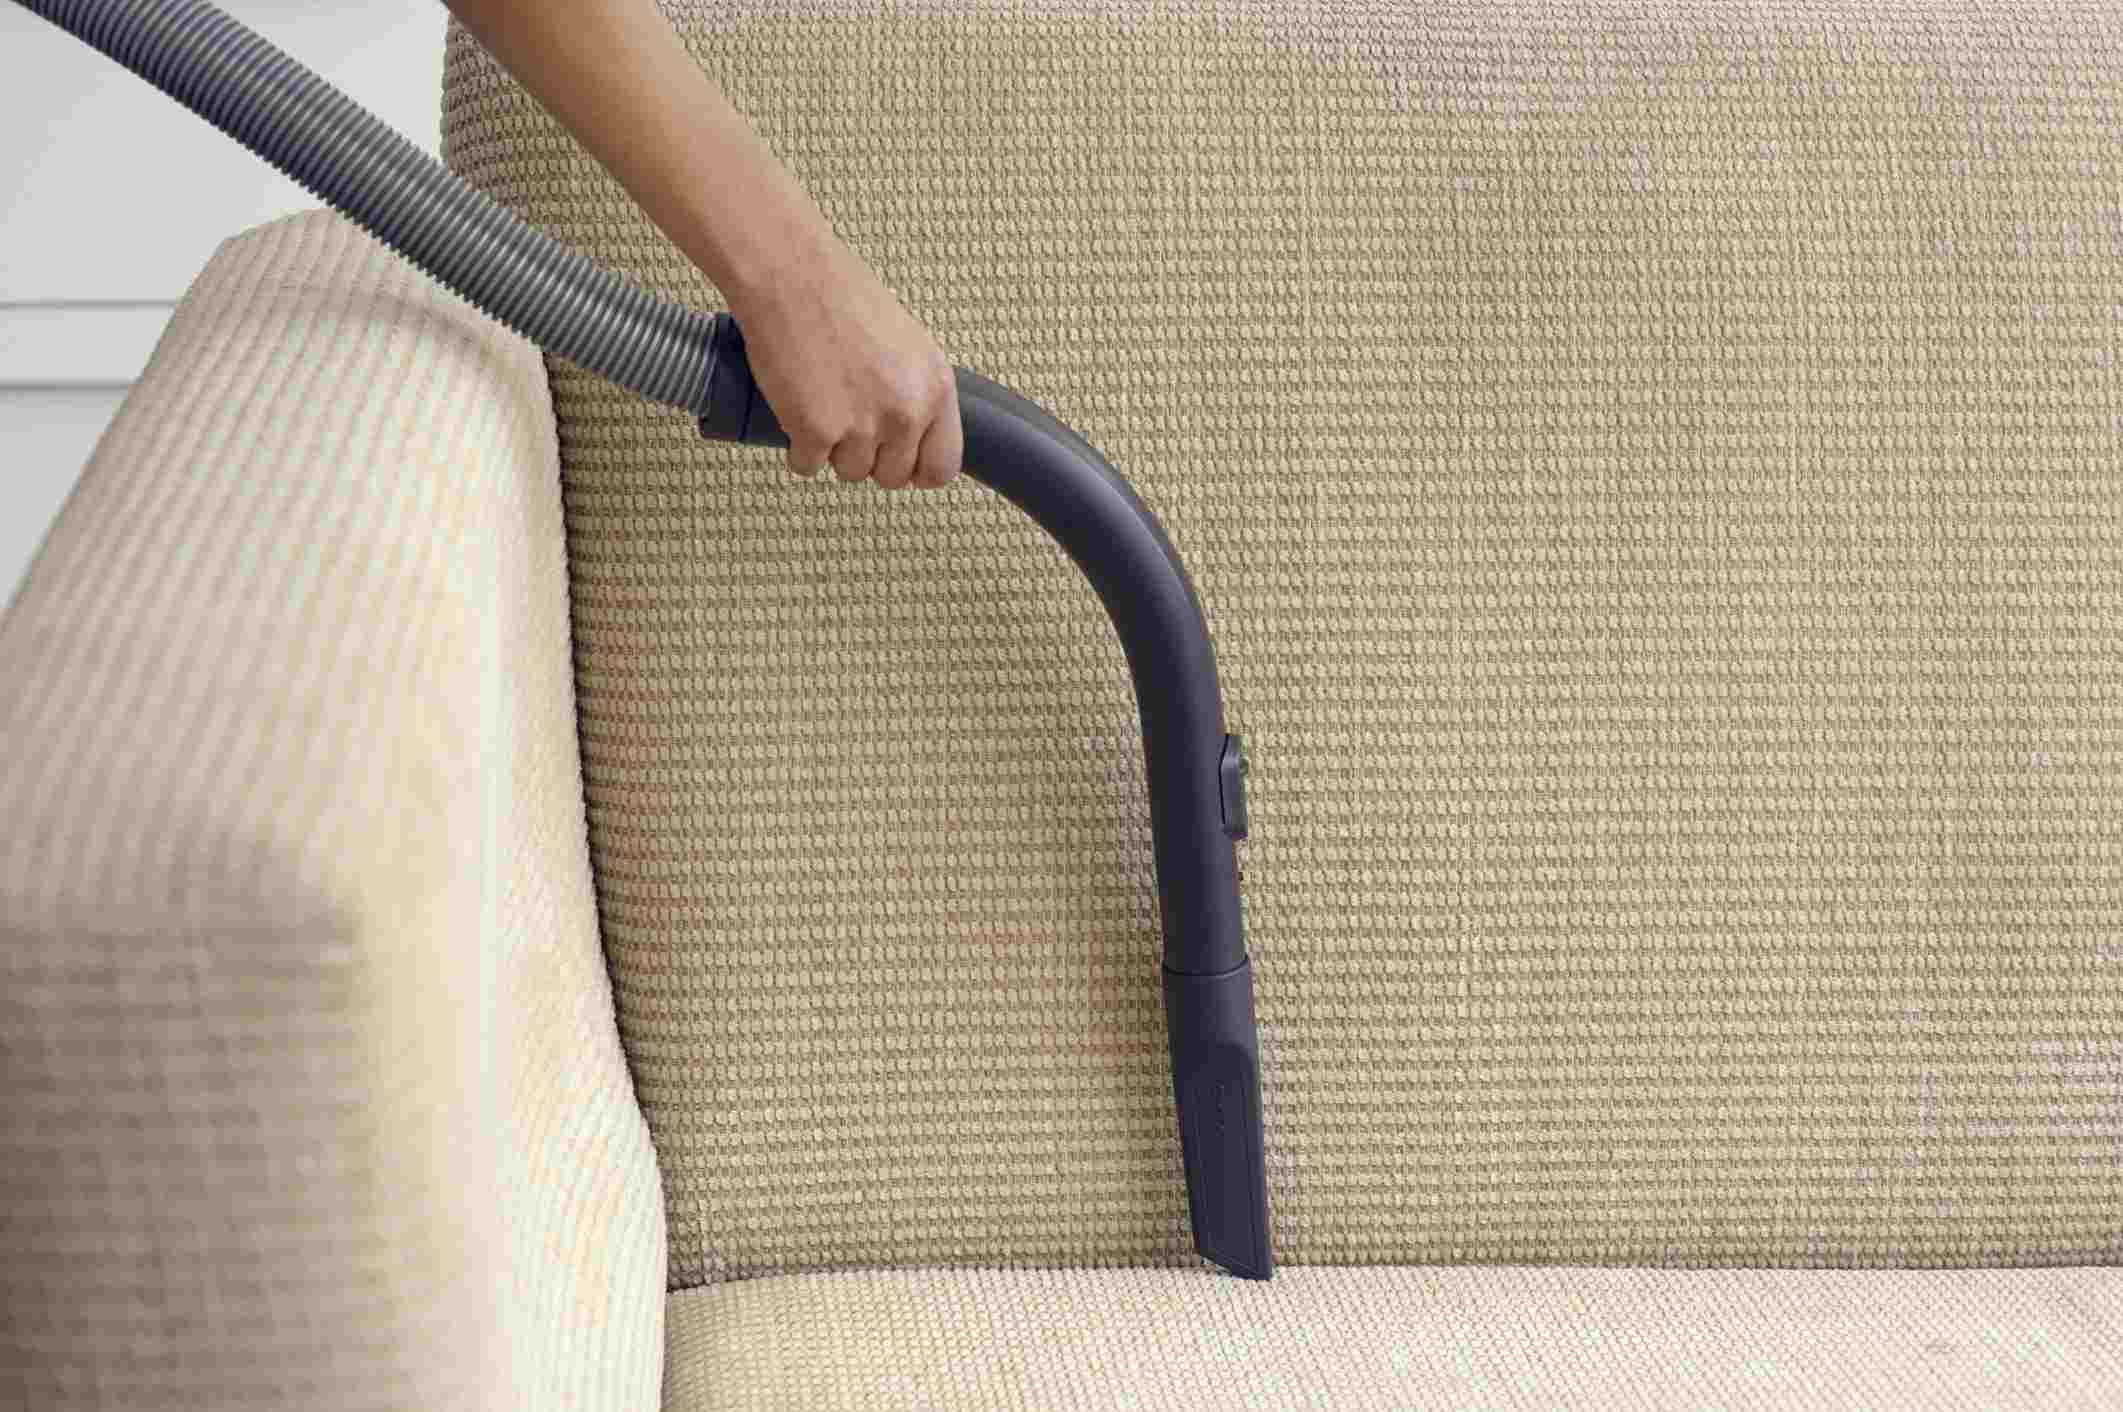 Woman removing dust from sofa edge using vacuum cleaner